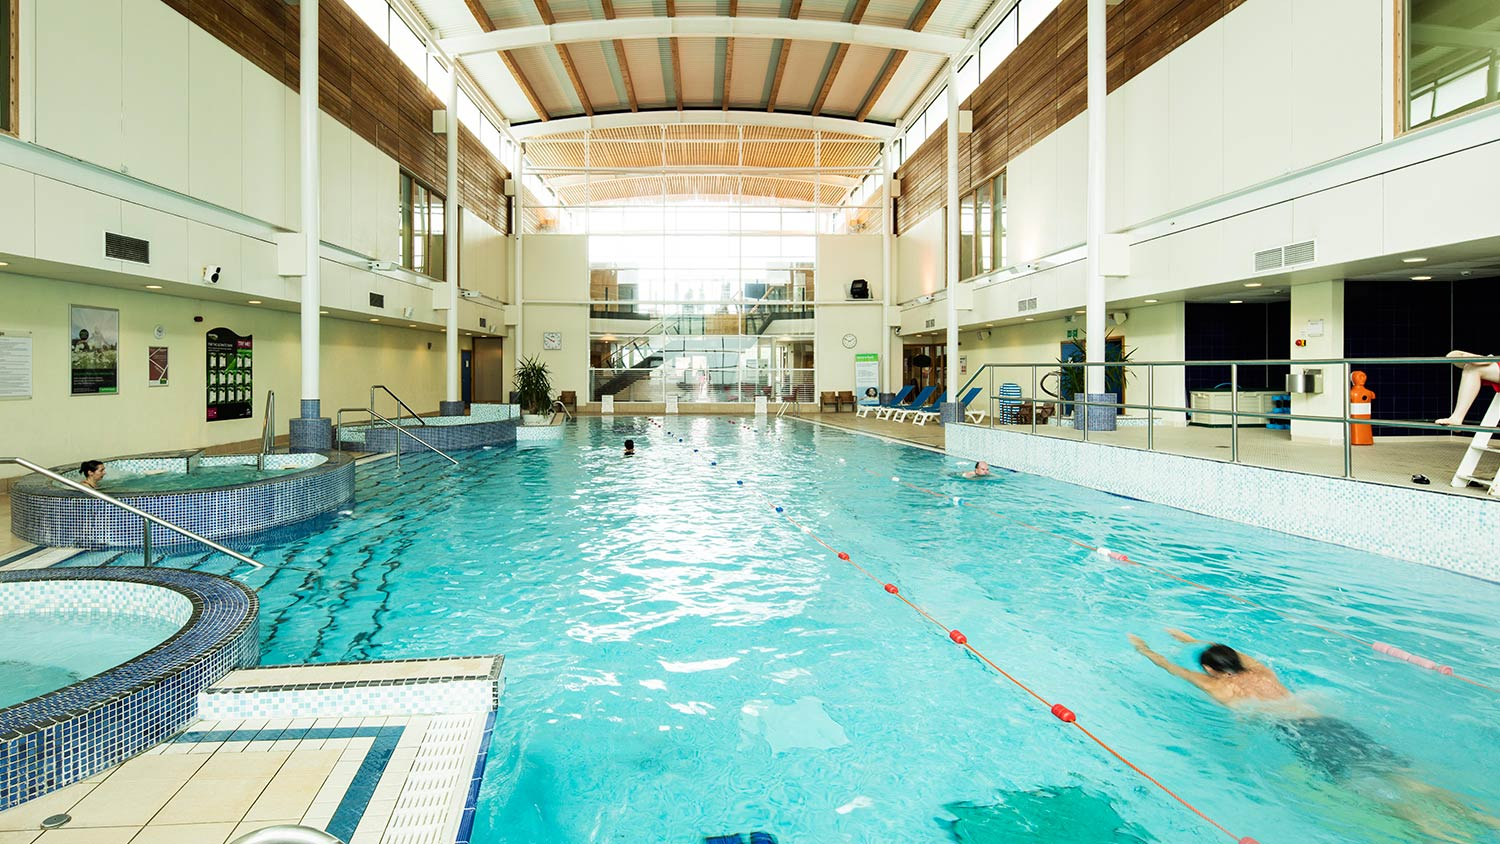 Liverpool gyms with pools - Swimming pools in liverpool with slides ...